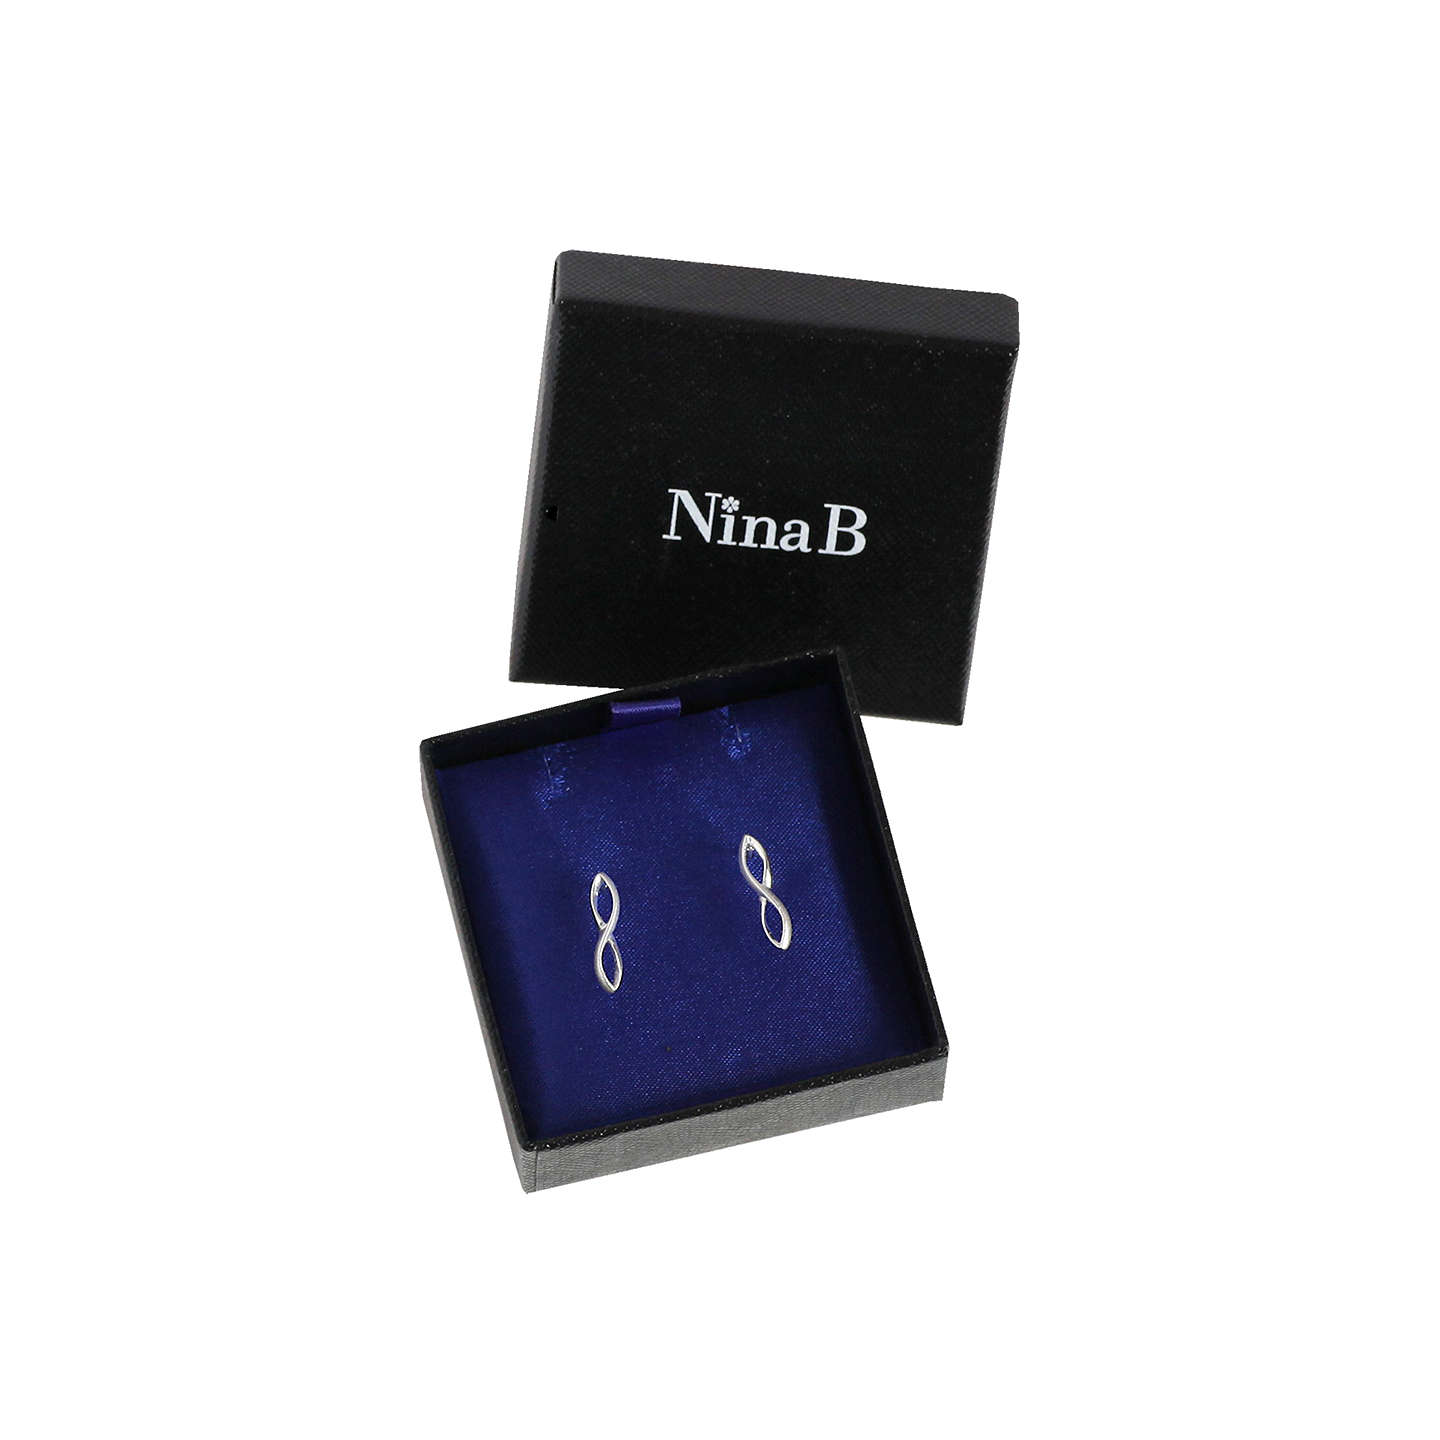 BuyNina B Sterling Silver Figure 8 Drop Earrings, Silver Online at johnlewis.com